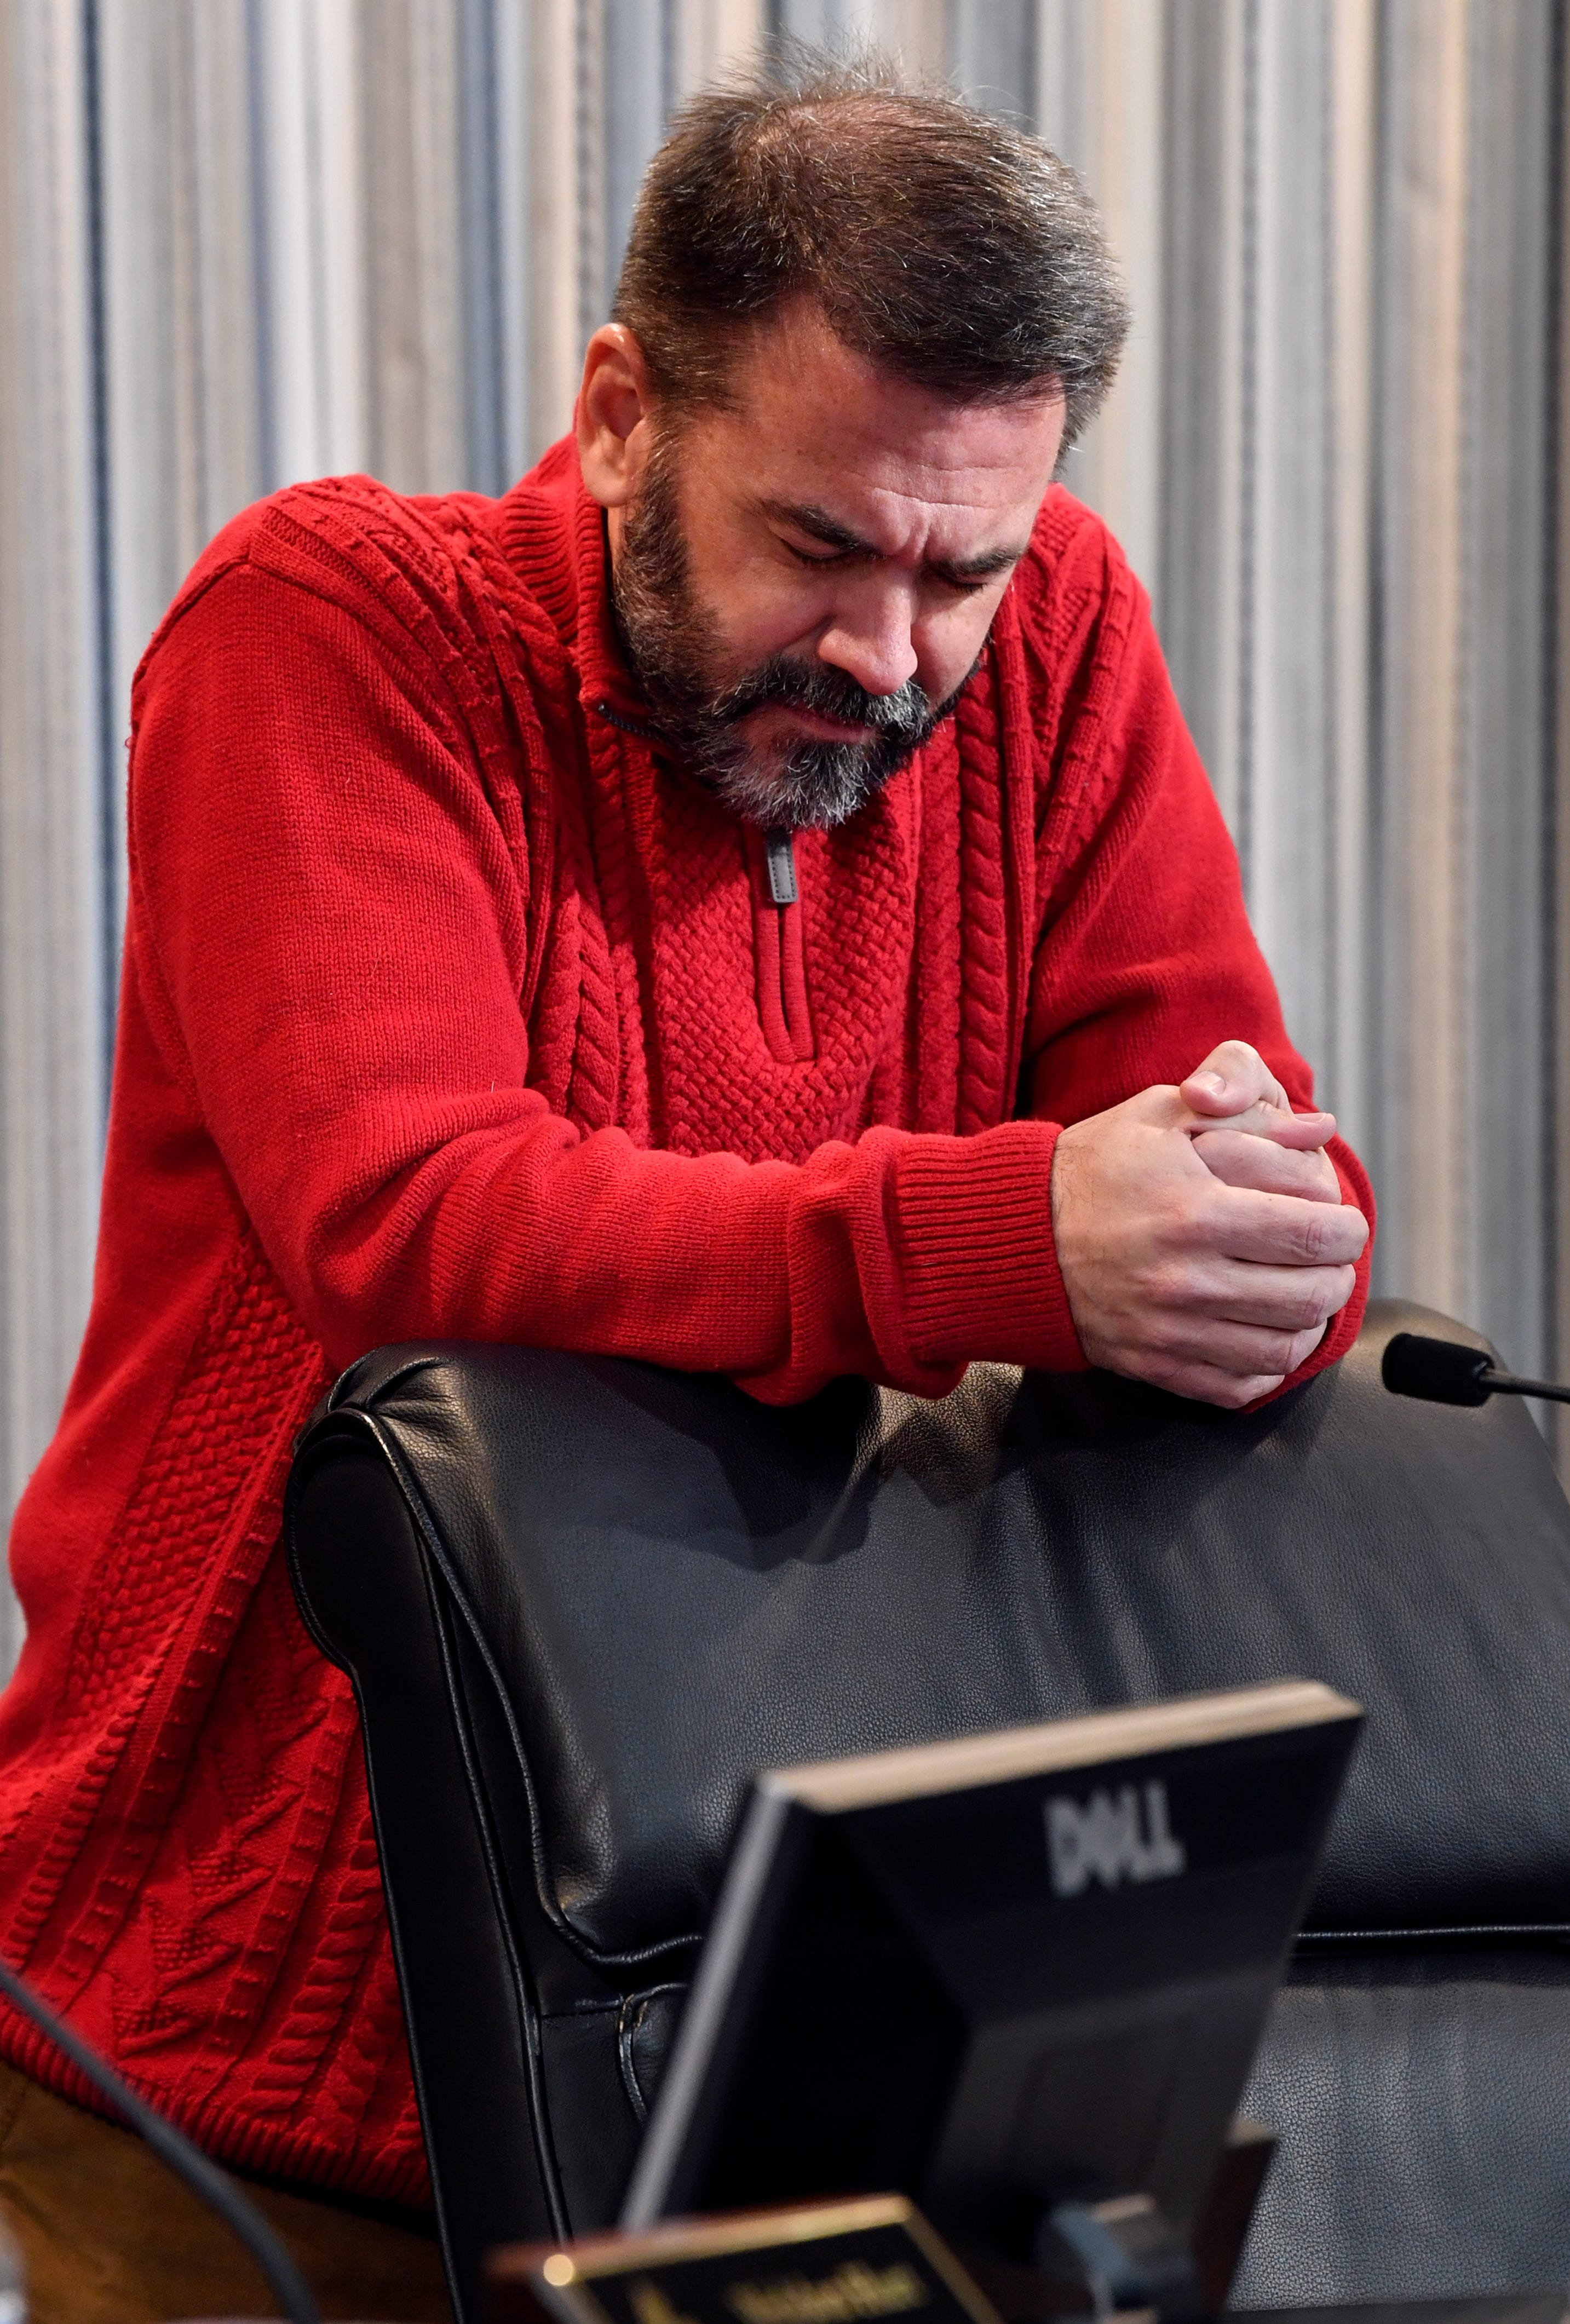 Abilene City Councilman Kyle McAlister bows his head in prayer during the invocation by fellow council member Donna Albus at the start of Thursday's meeting at City Hall Jan. 24, 2019. A measure to censure McAlister for social media posts some have found racially insensitive did not pass.